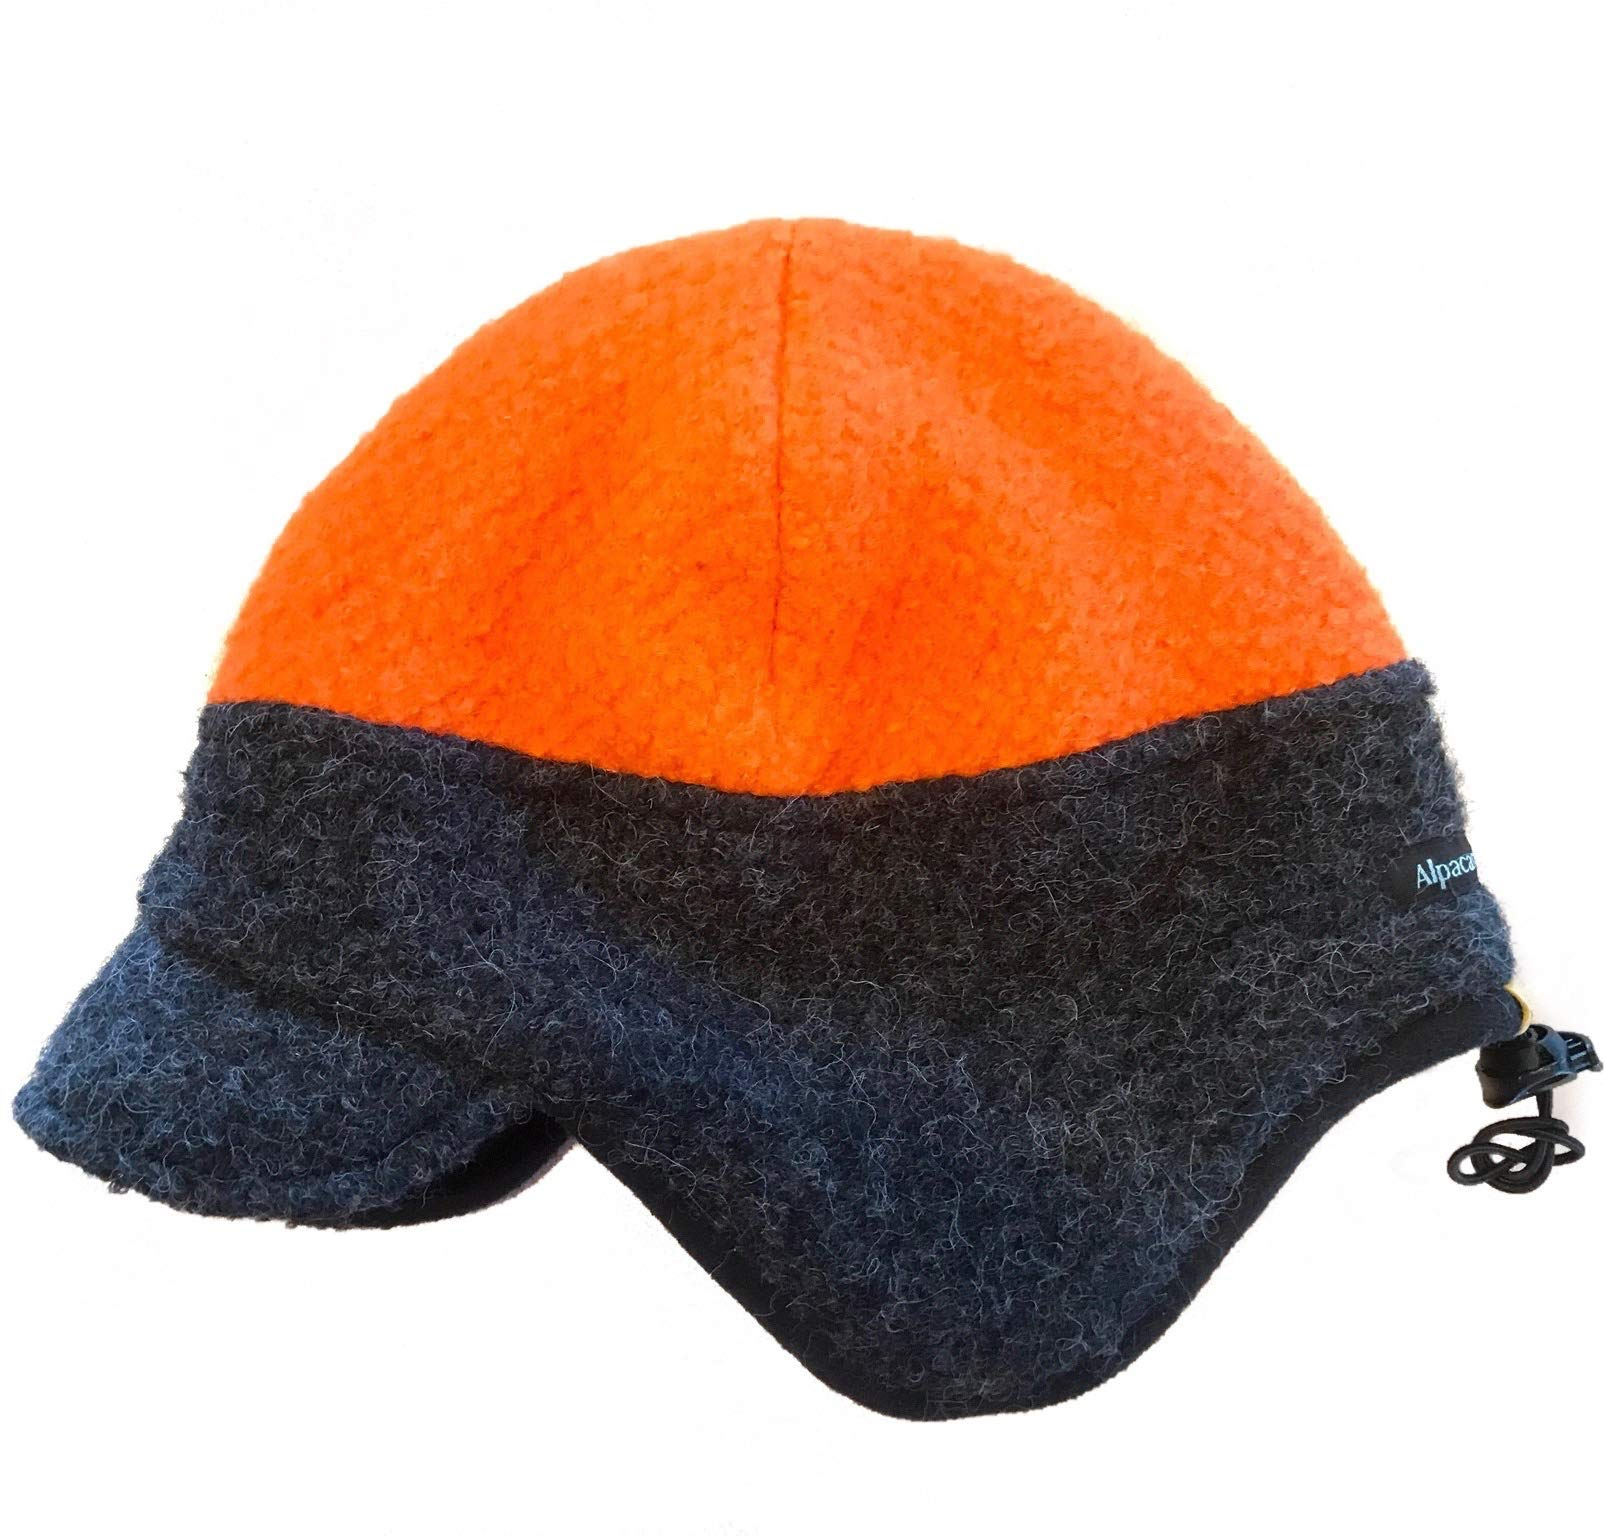 Alpacas of Montana Extreme Warmth Adjustable Windstopper Sportsman's Hunting Hat - 3 Size and Color Options Uni-Sex (Orange/Gray, Medium) by Alpacas of Montana